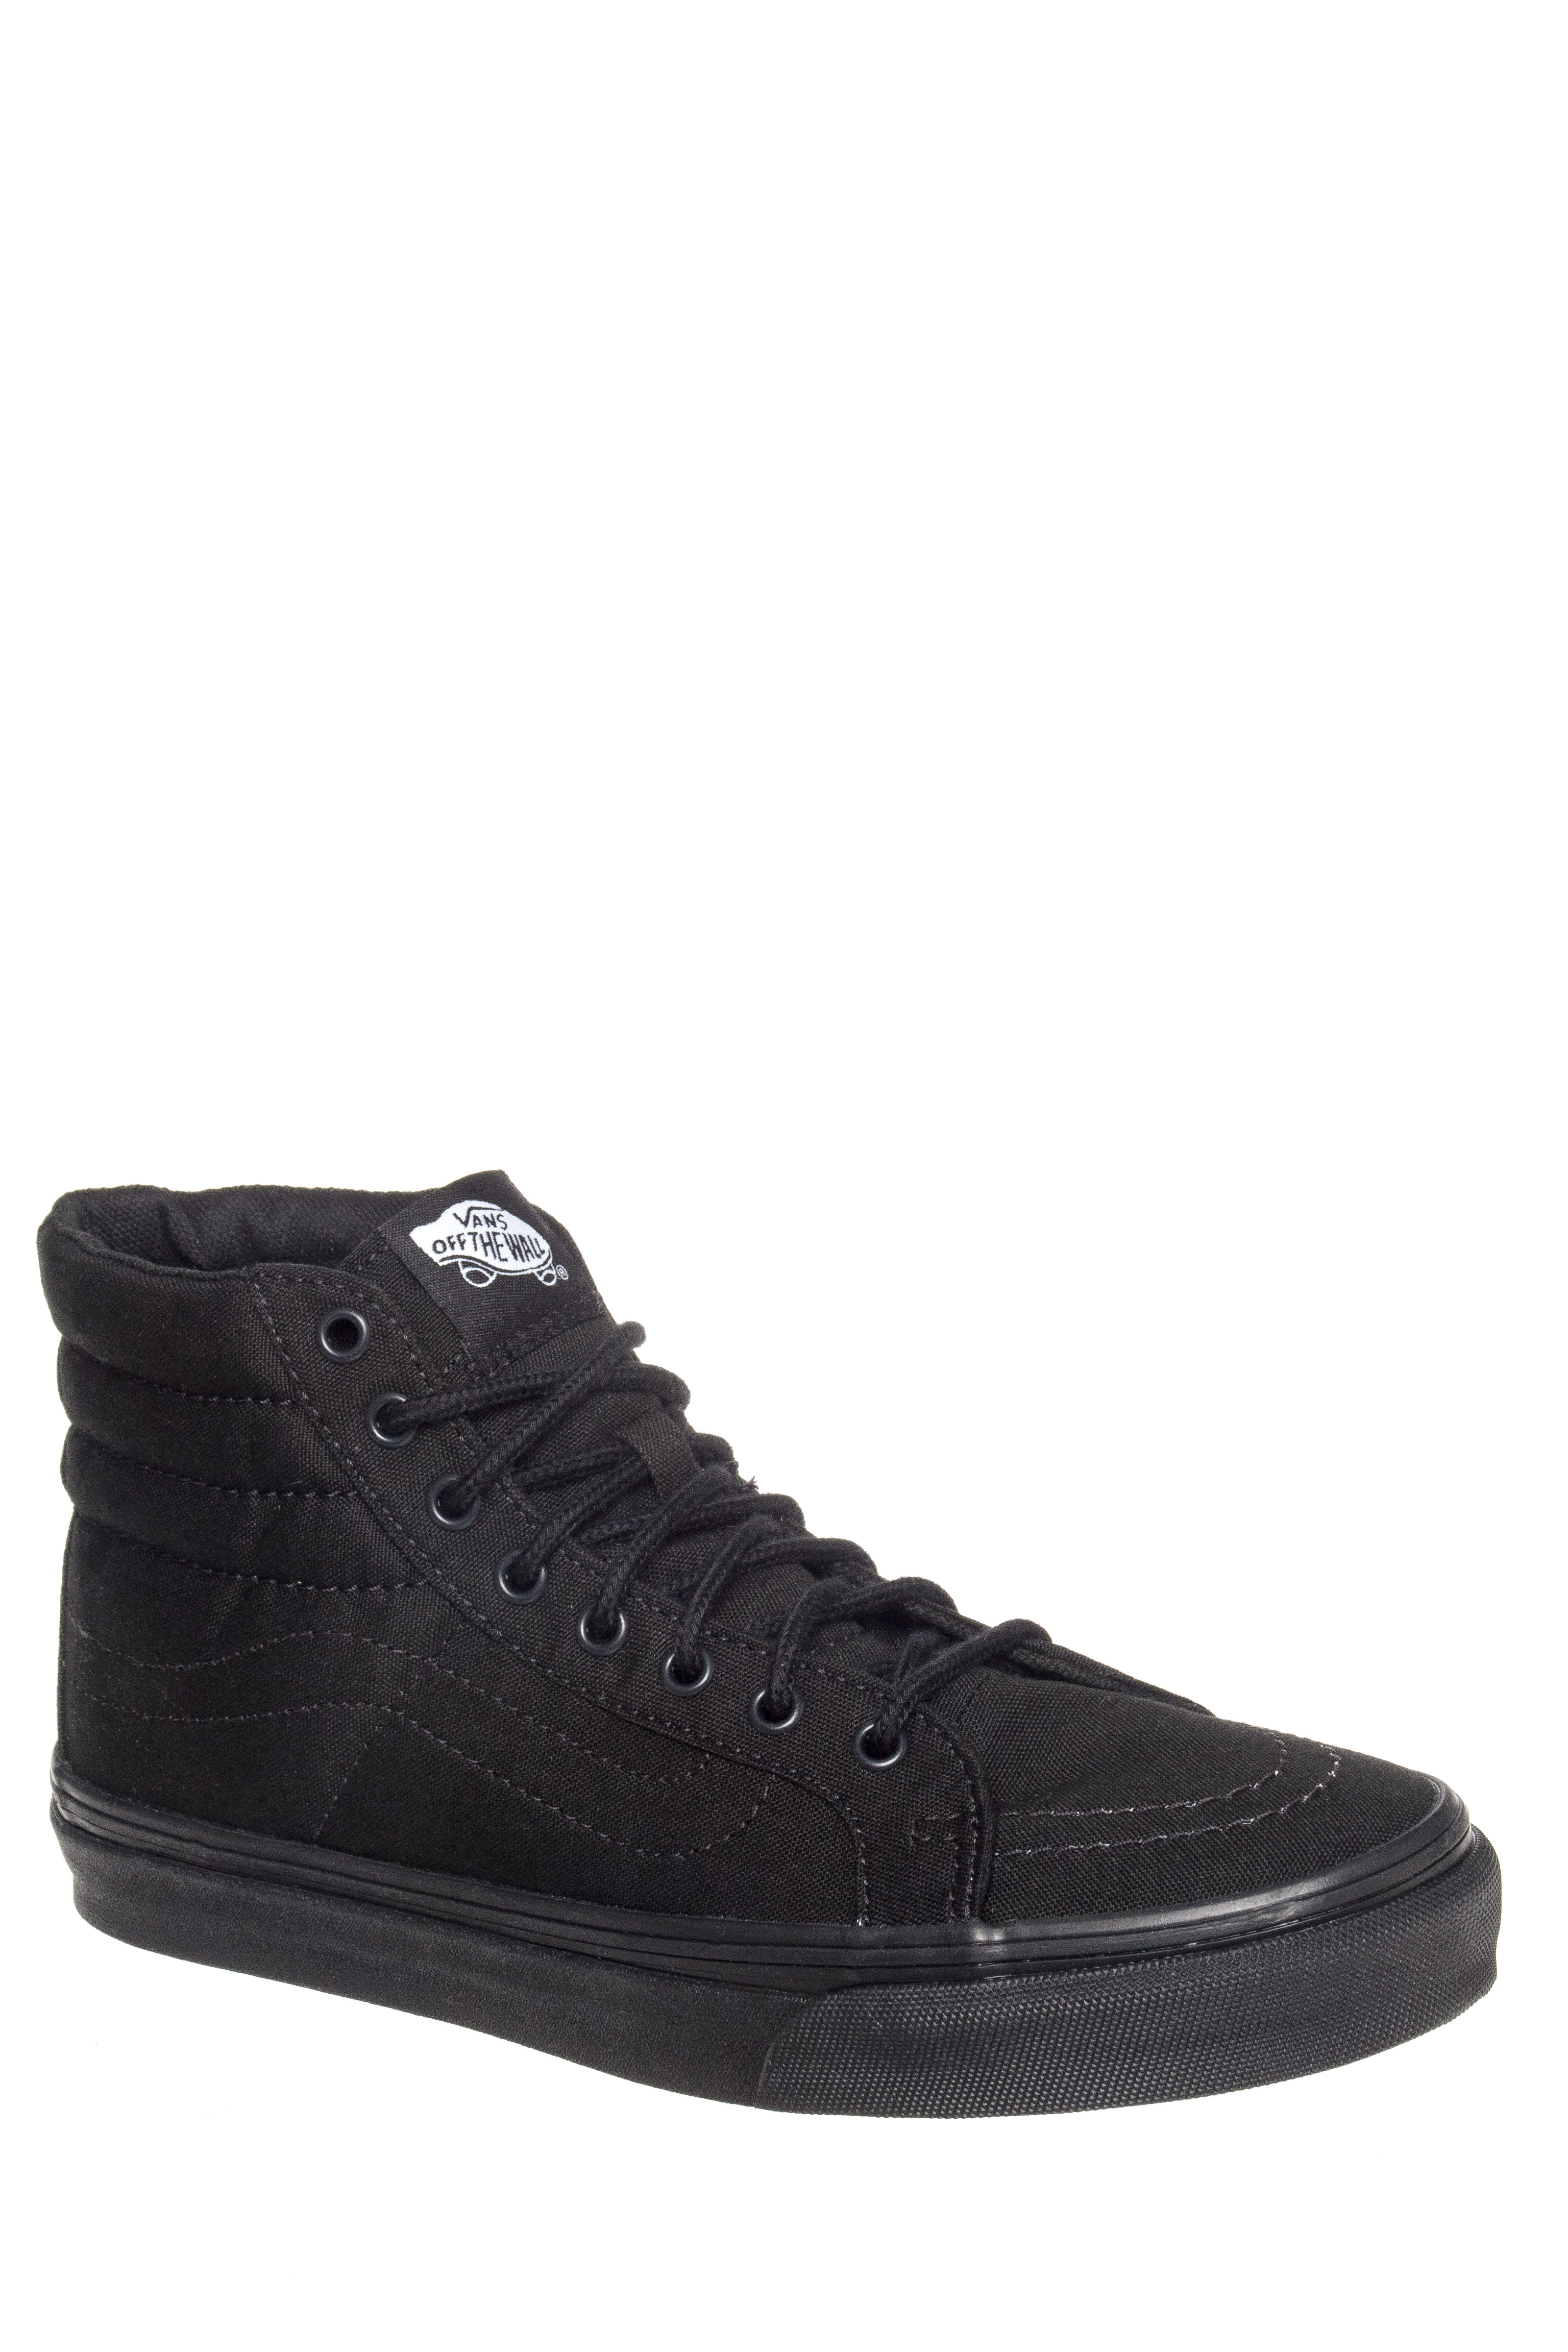 Vans W-Unisex Sk8-Hi Slim High Top Sneakers - Black / Black